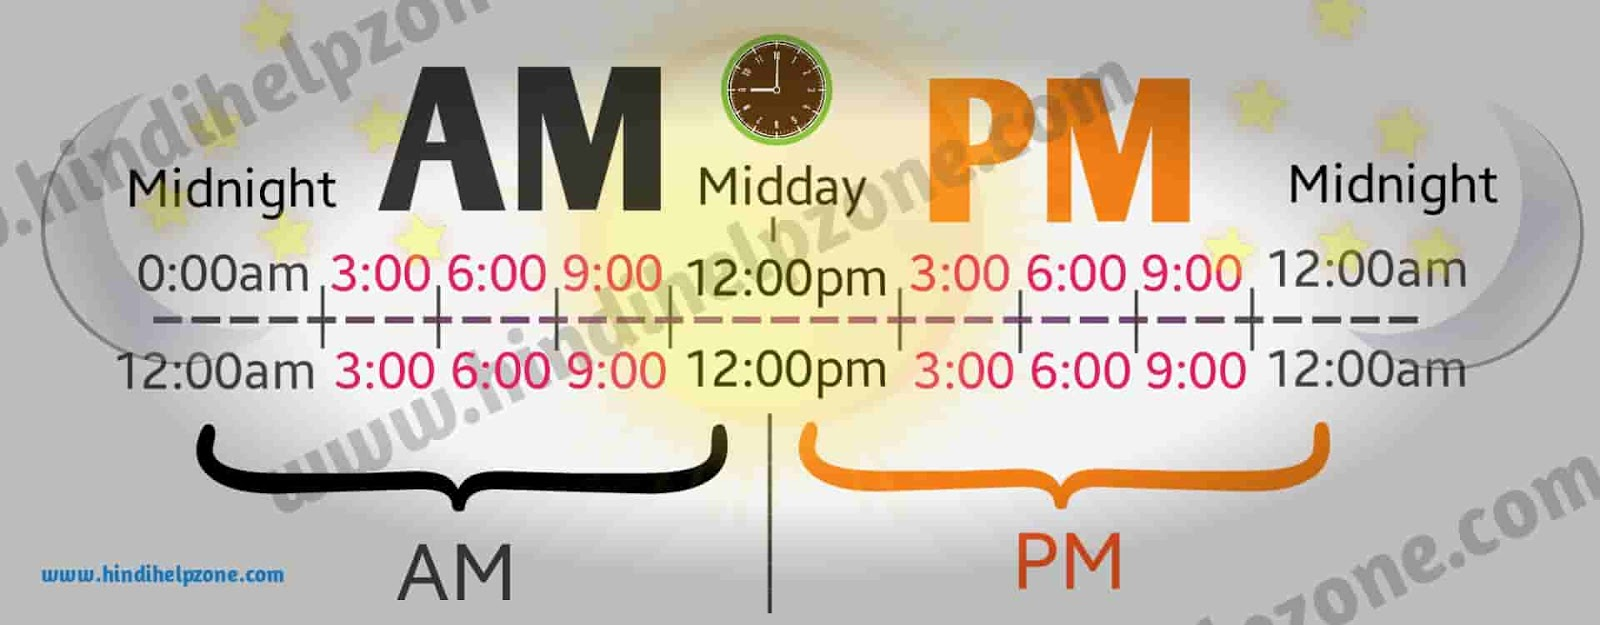 Am And Pm Full Form In Hindi